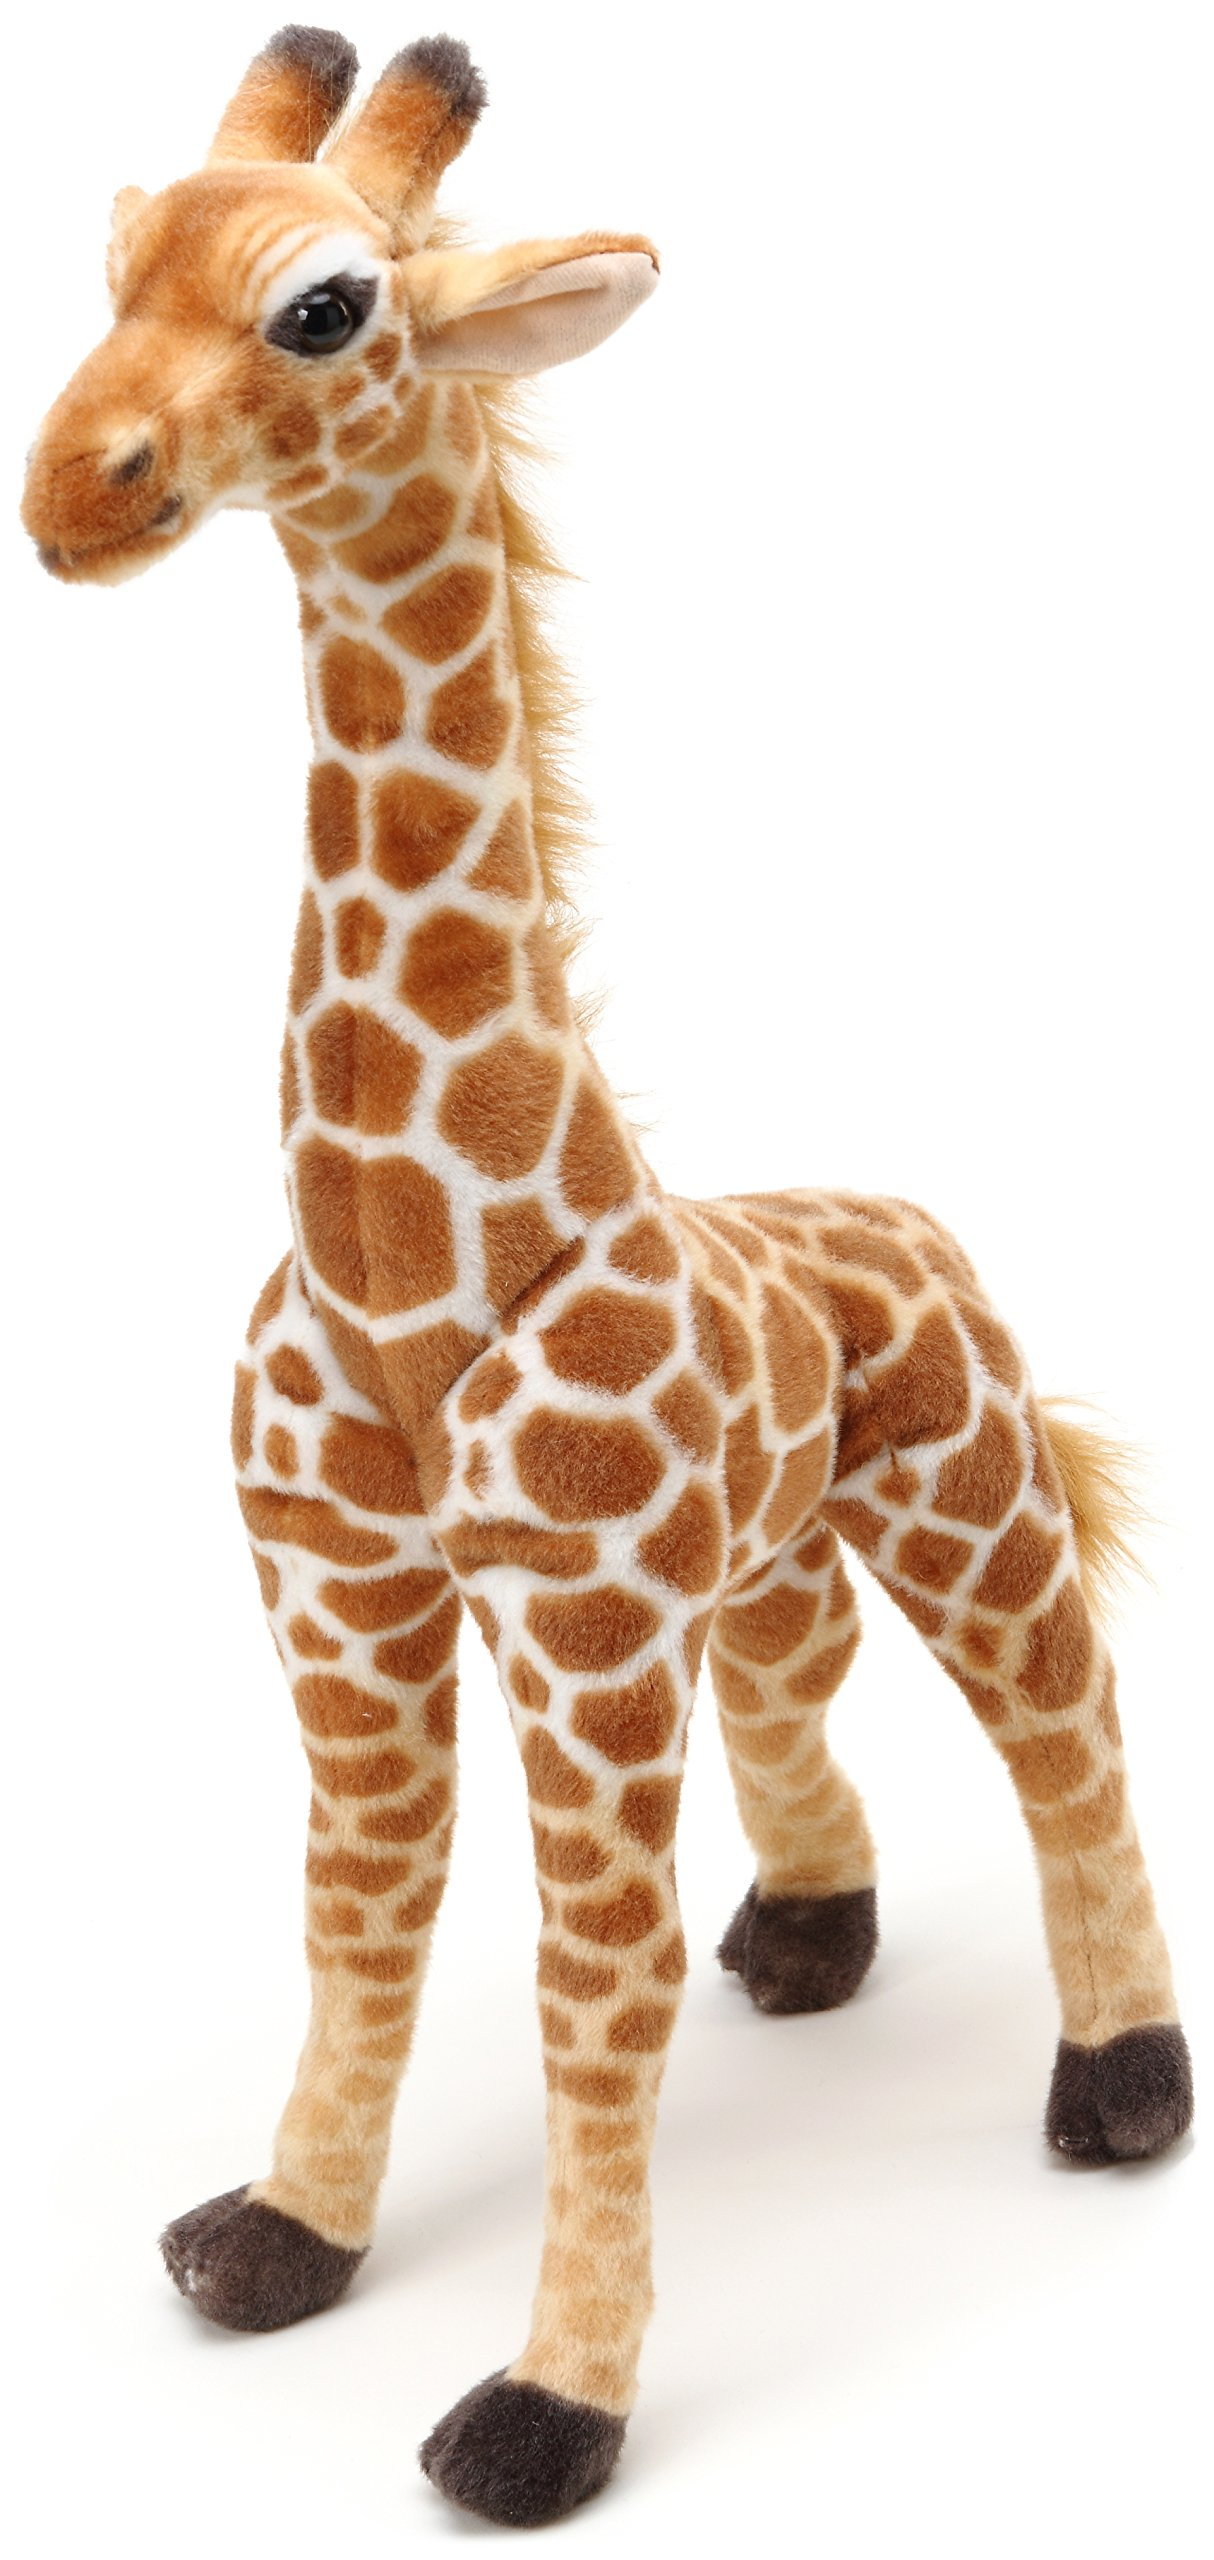 VIAHART Jocelyn The Giraffe | 23 Inch Tall Stuffed Animal Plush | by Tiger Tale Toys by VIAHART